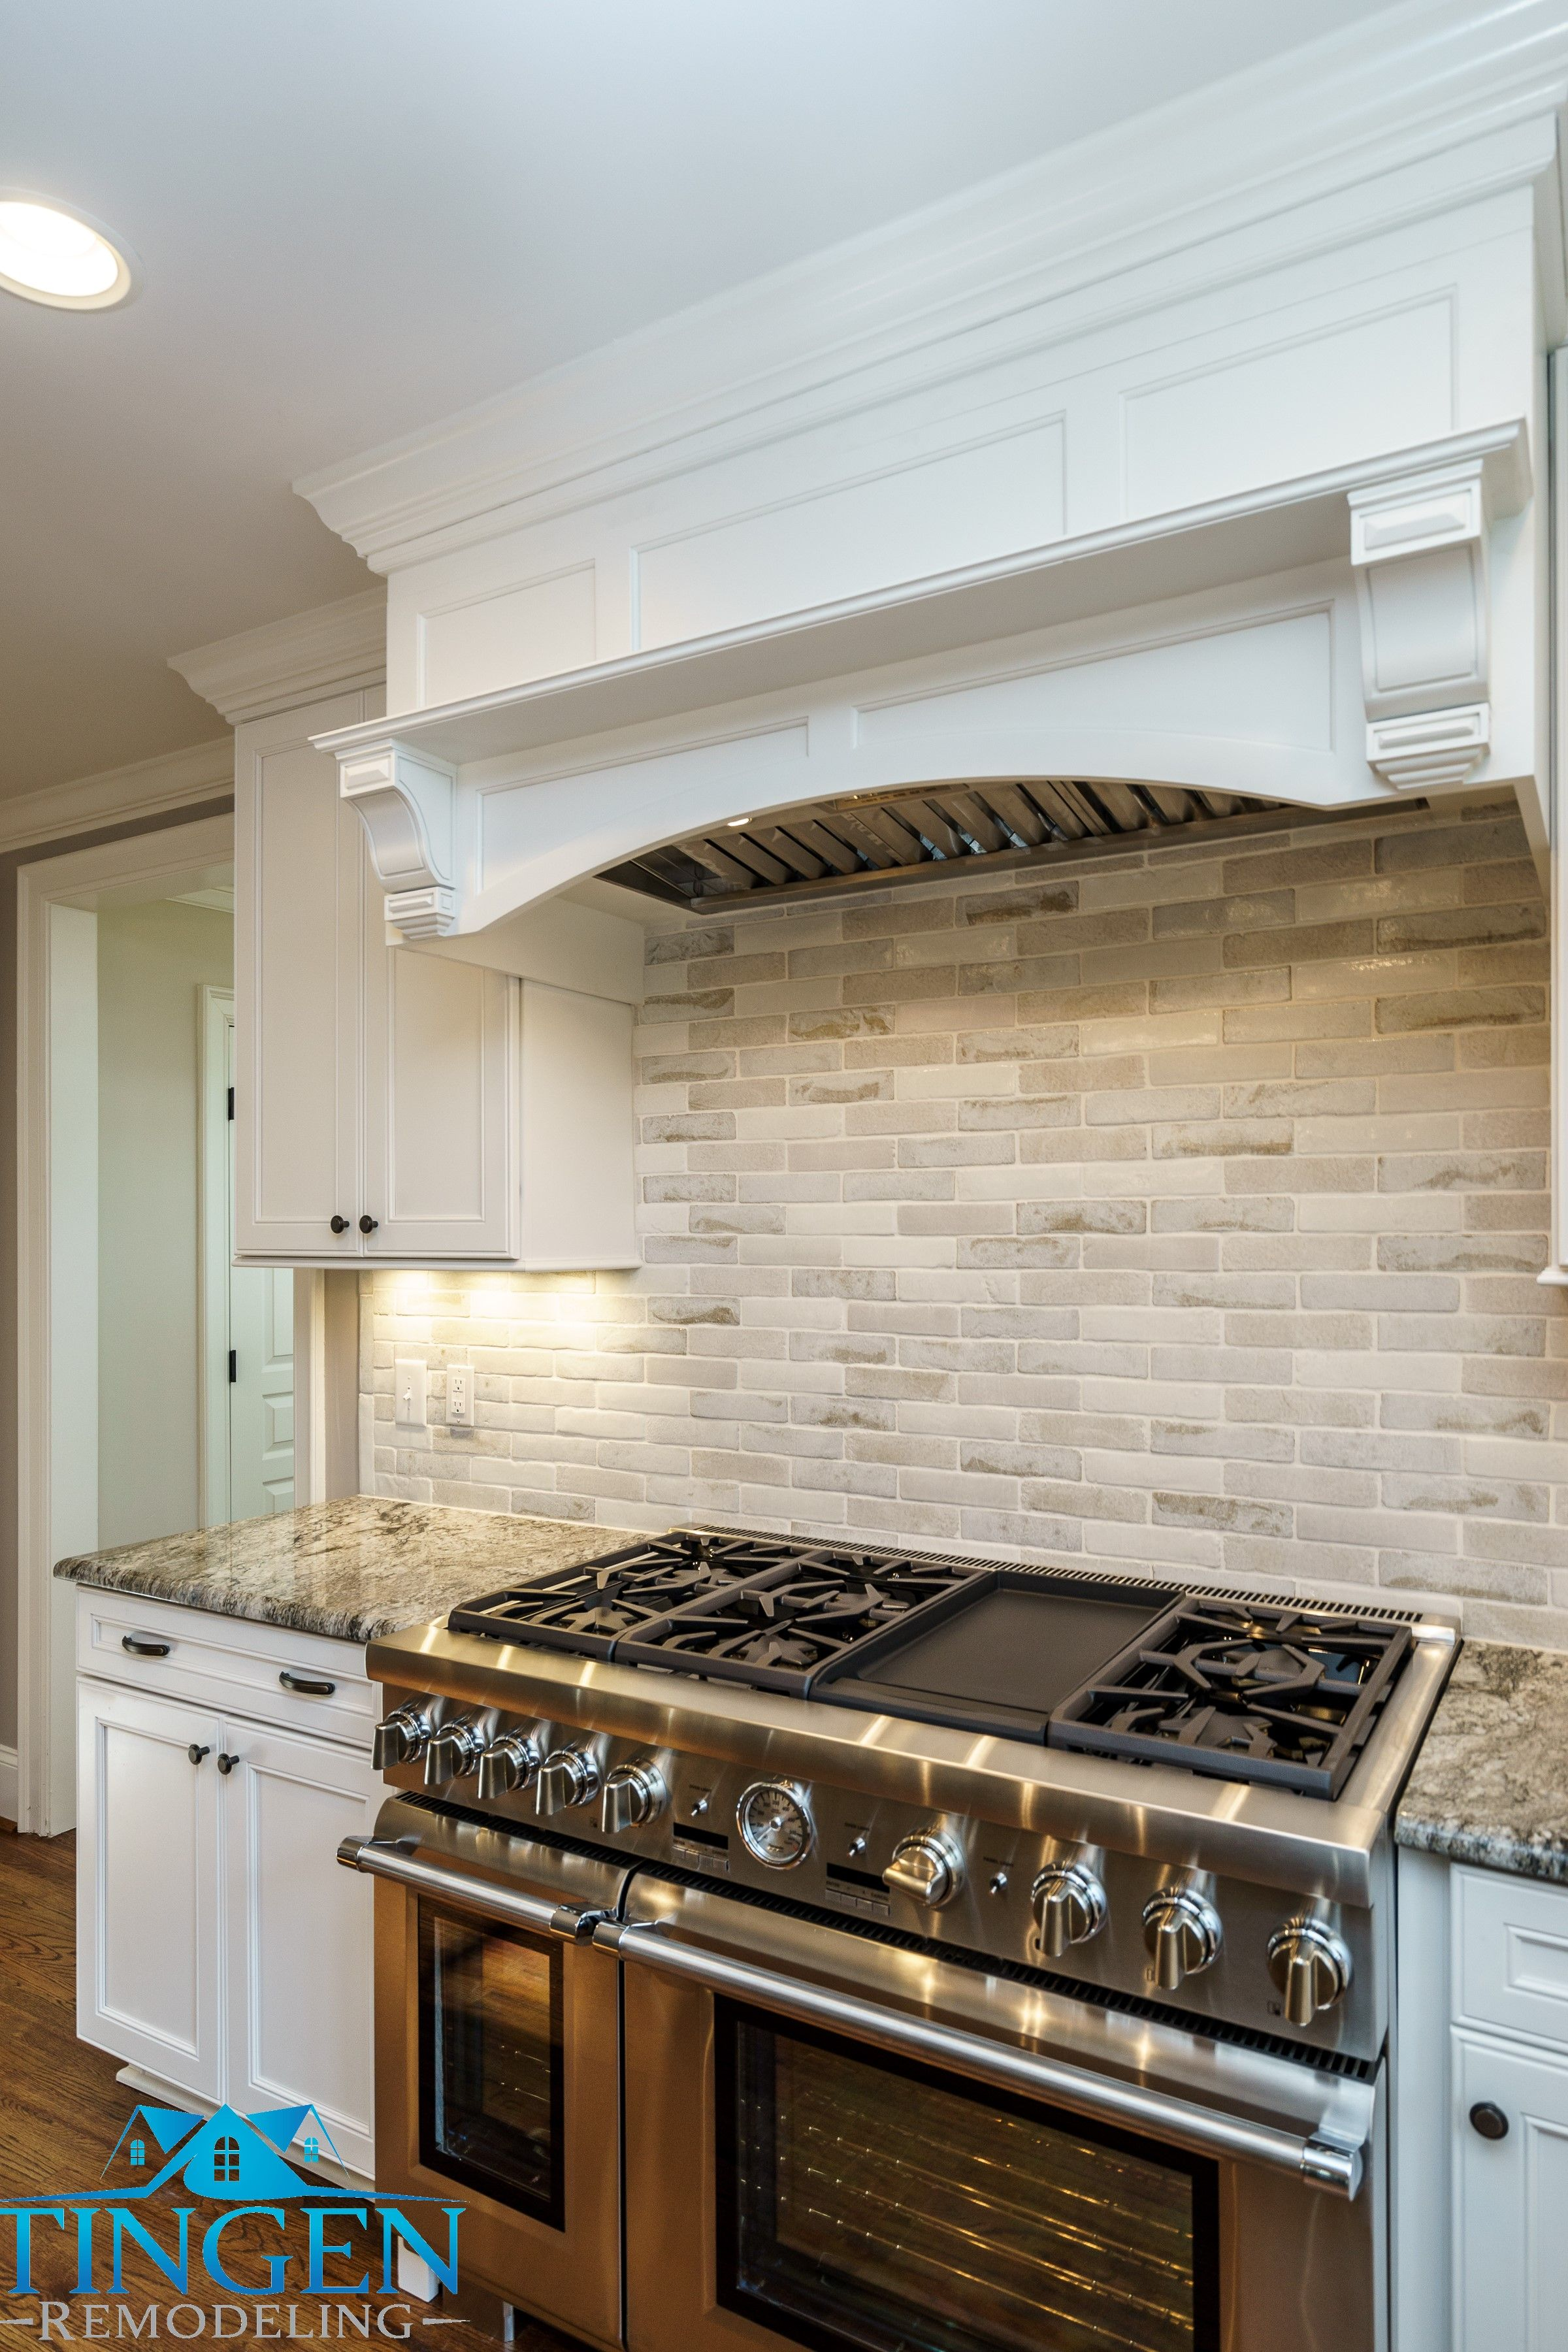 Tingen Remodeling Raleigh Nc Thermador Kitchen Cabinets Brizo Rohl Sink Faucet Re Custom Kitchen Remodel Kitchen Remodel Bathrooms Remodel